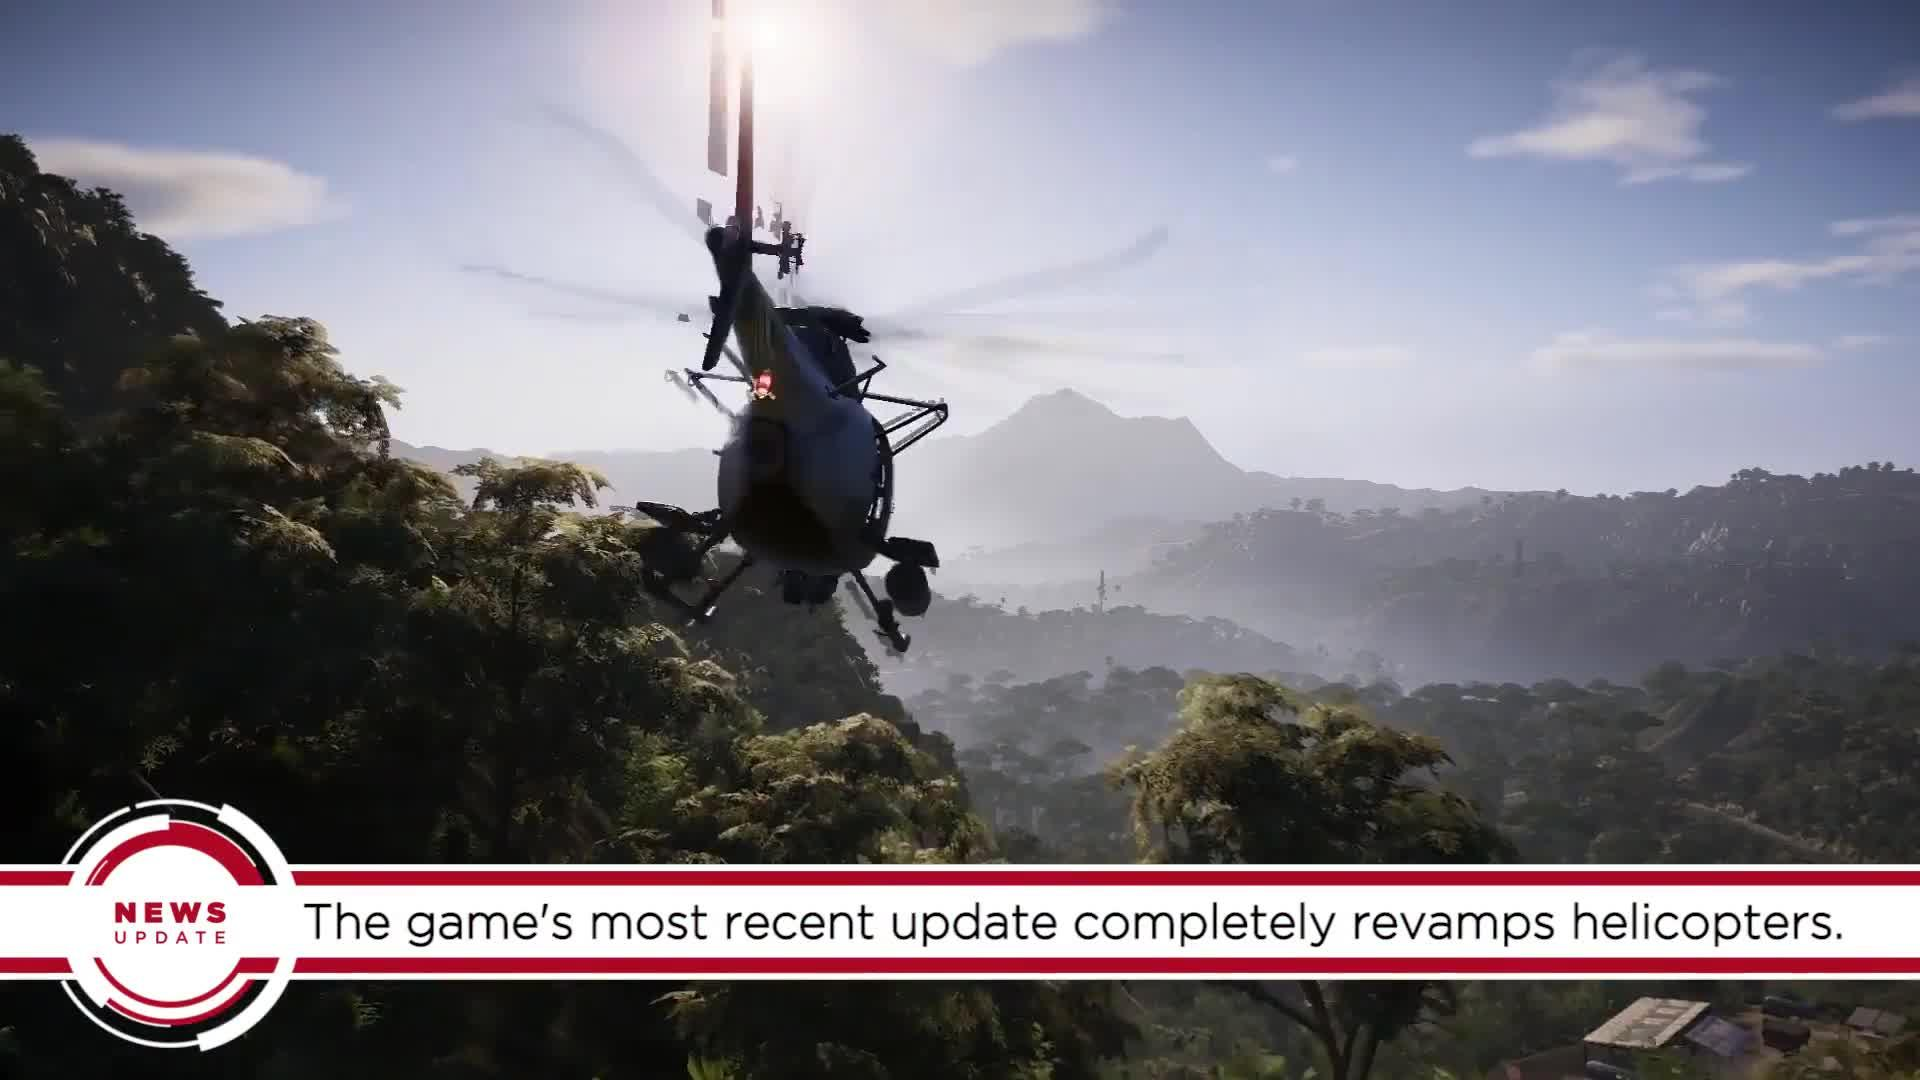 GS News Update: Ghost Recon Wildlands Is Getting A PvP Beta And Better Helicopter Controls